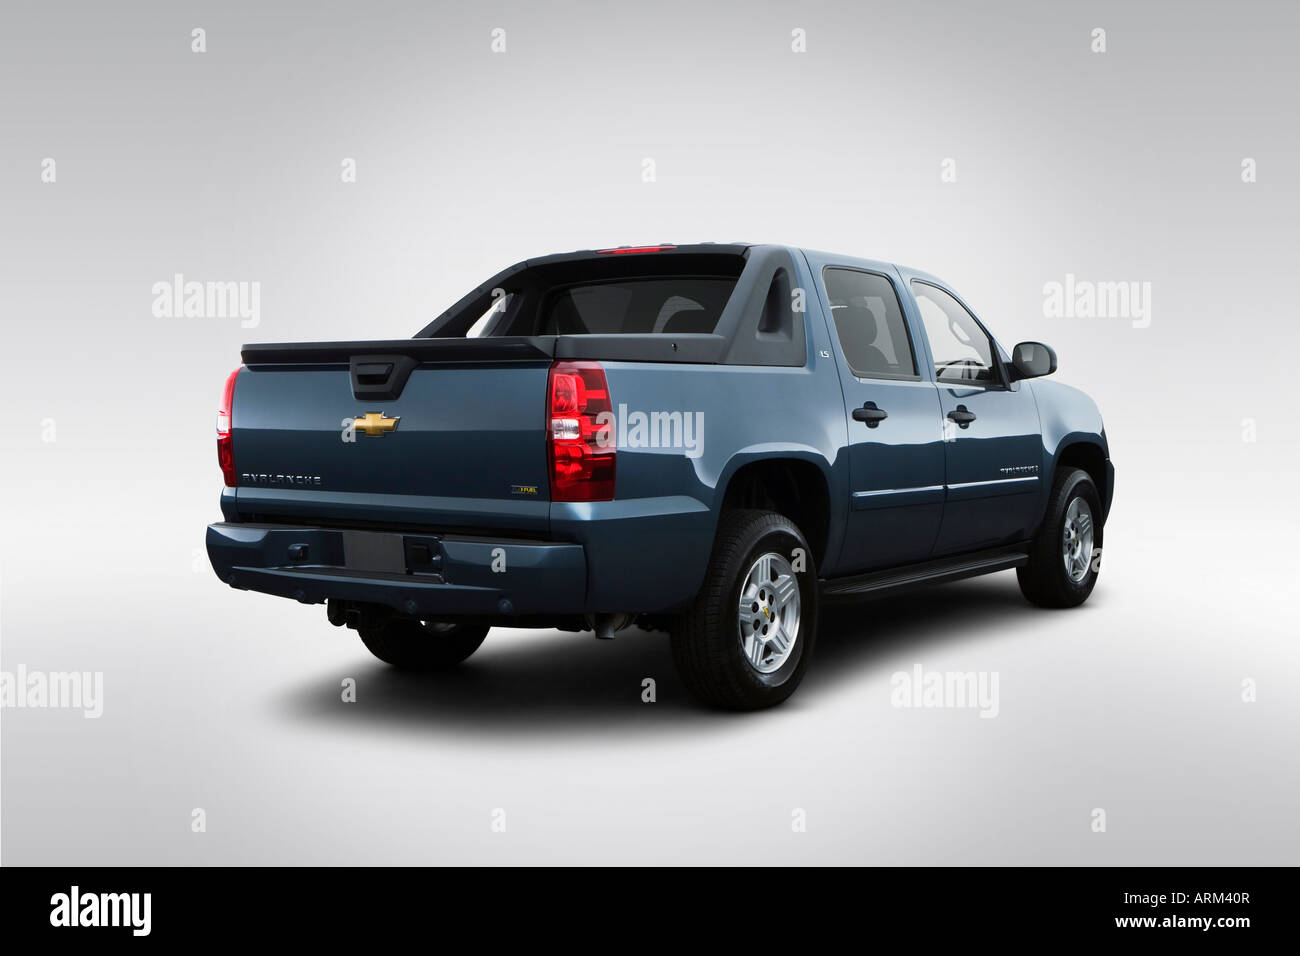 Avalanche 2008 chevrolet avalanche : 2008 Chevrolet Avalanche LS in Blue - Rear angle view Stock Photo ...